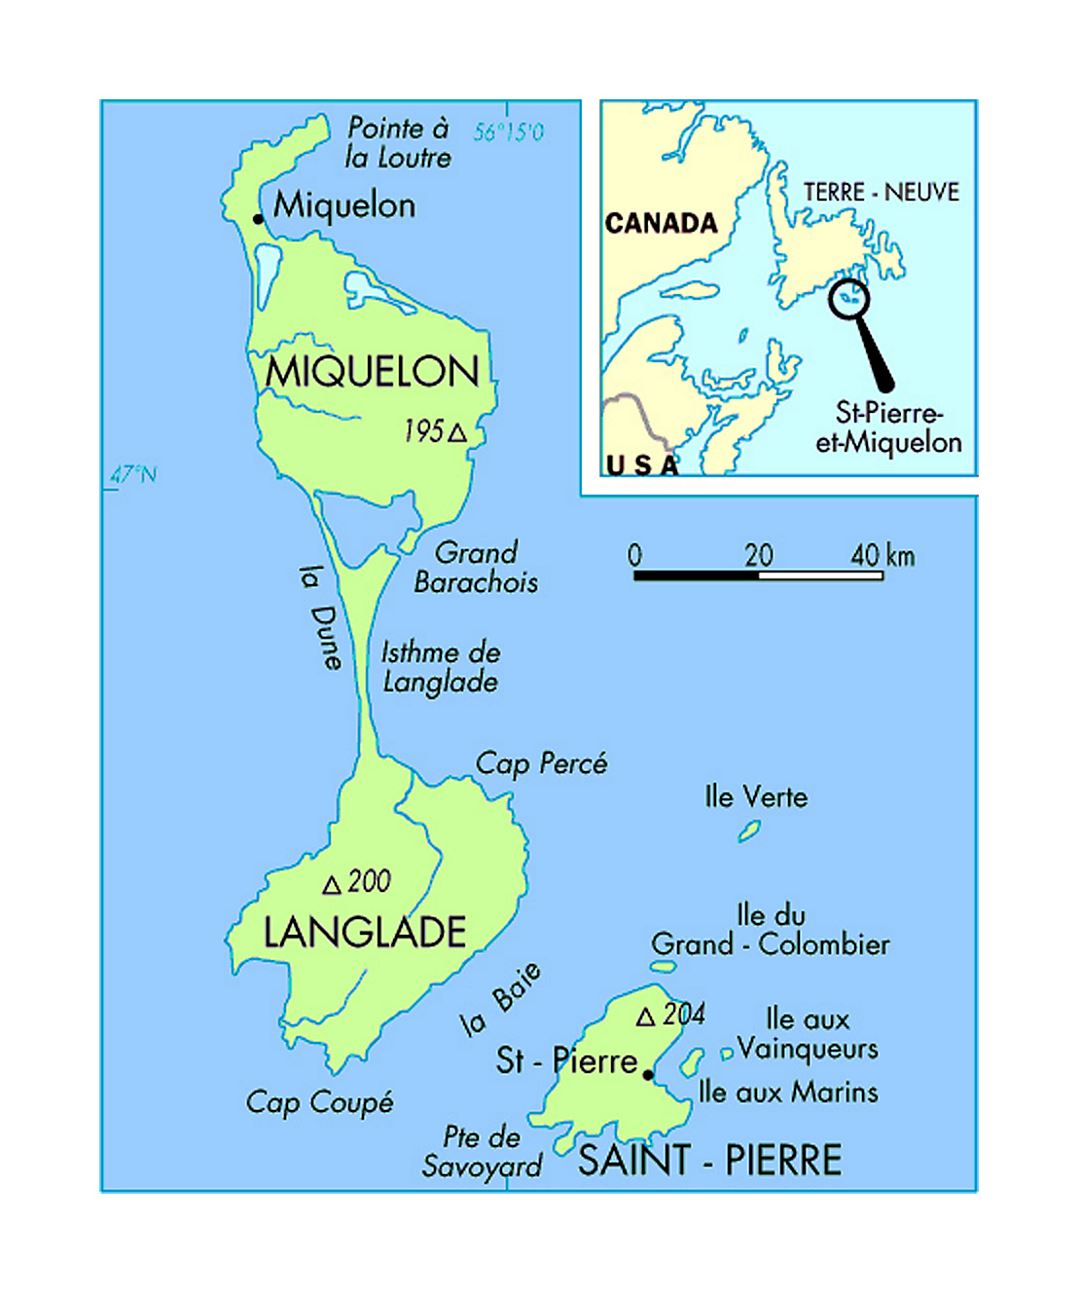 Political map of Saint Pierre and Miquelon with majot cities